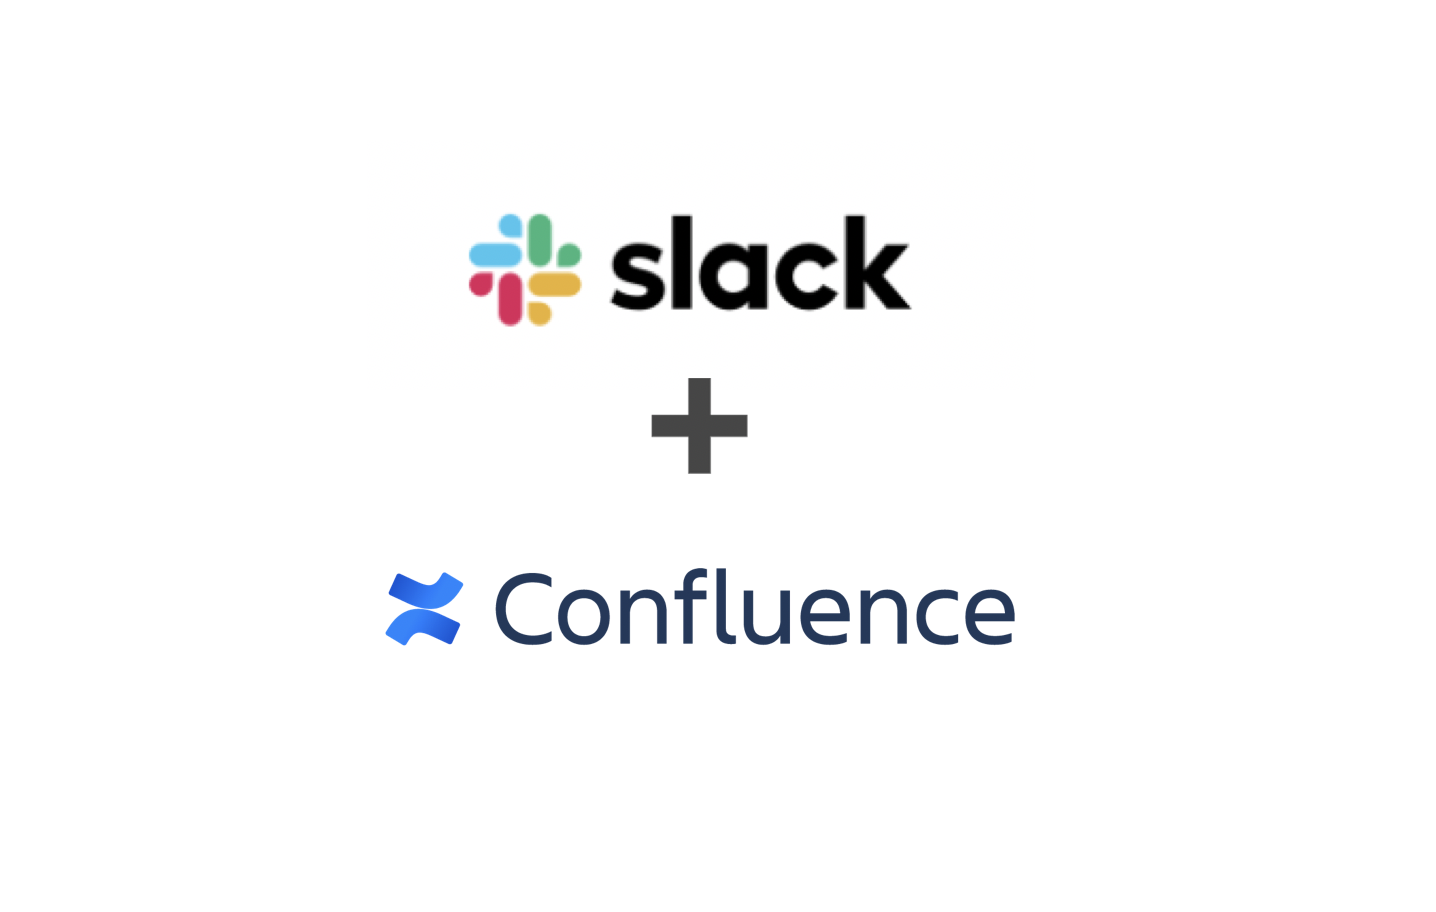 How to integrate Confluence, a popular collaboration service, with Slack, a business chat service